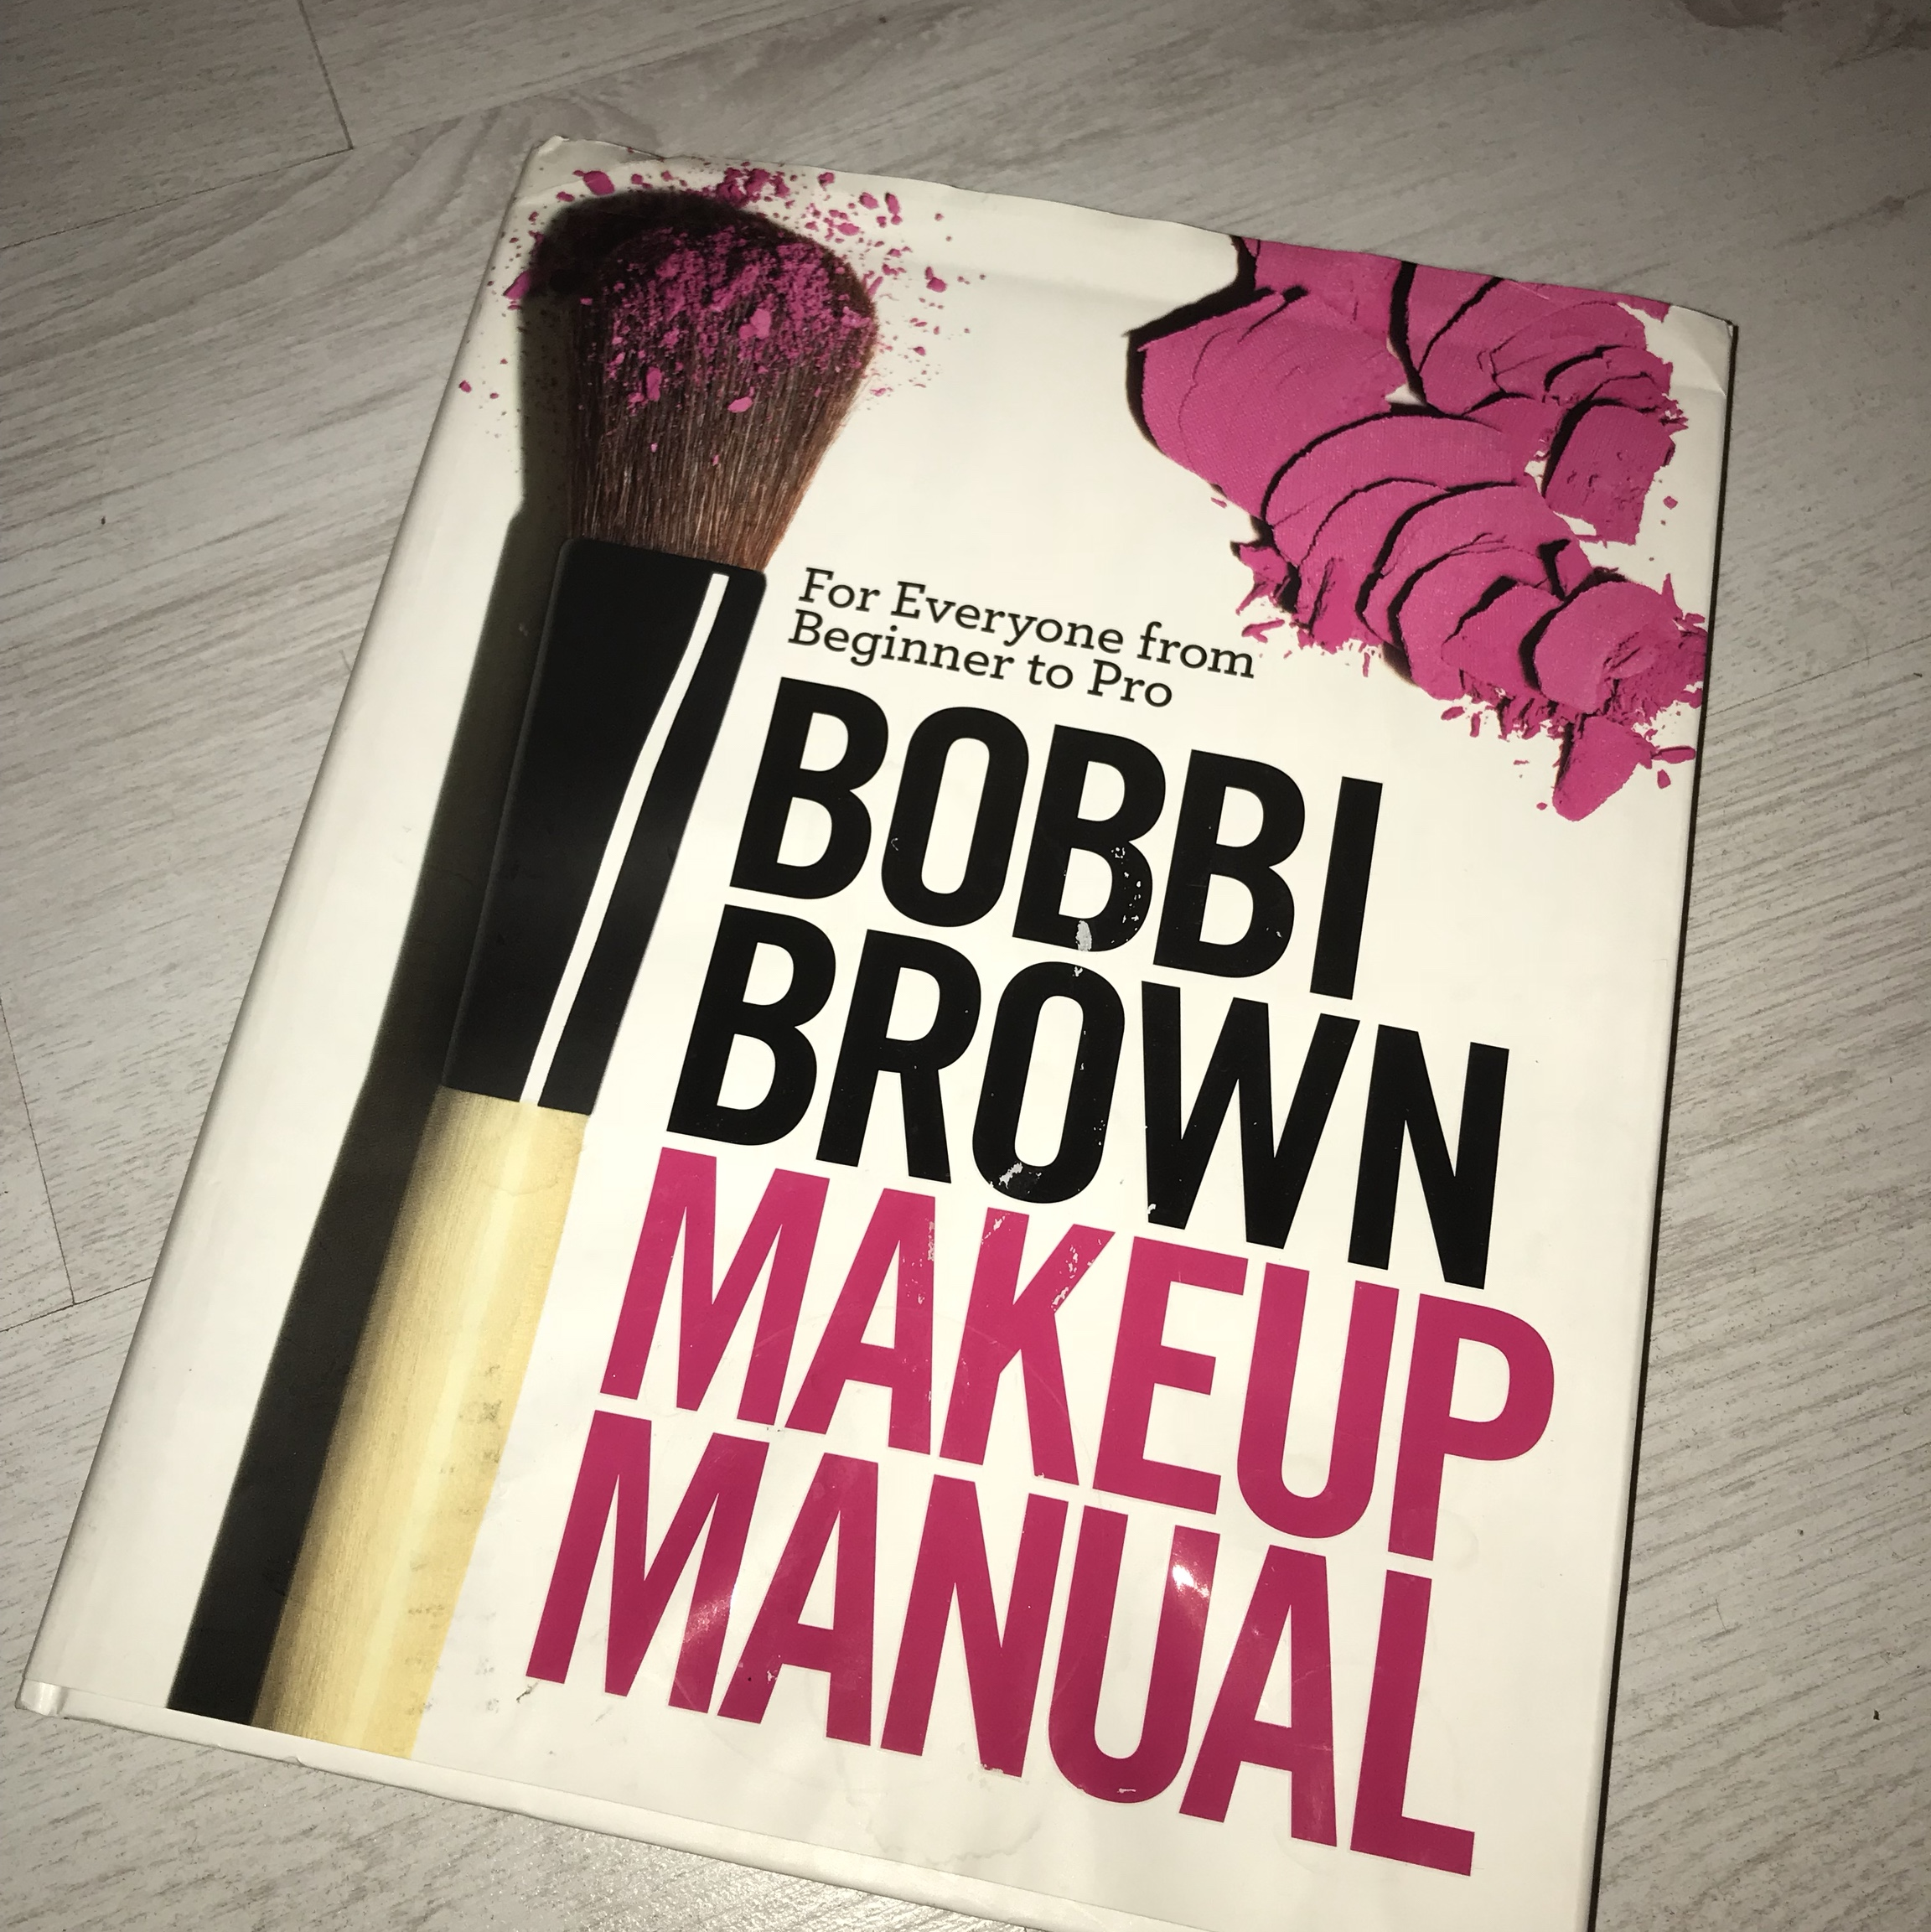 Bobbi Brown Makeup Manual Used And Does Have Few Depop